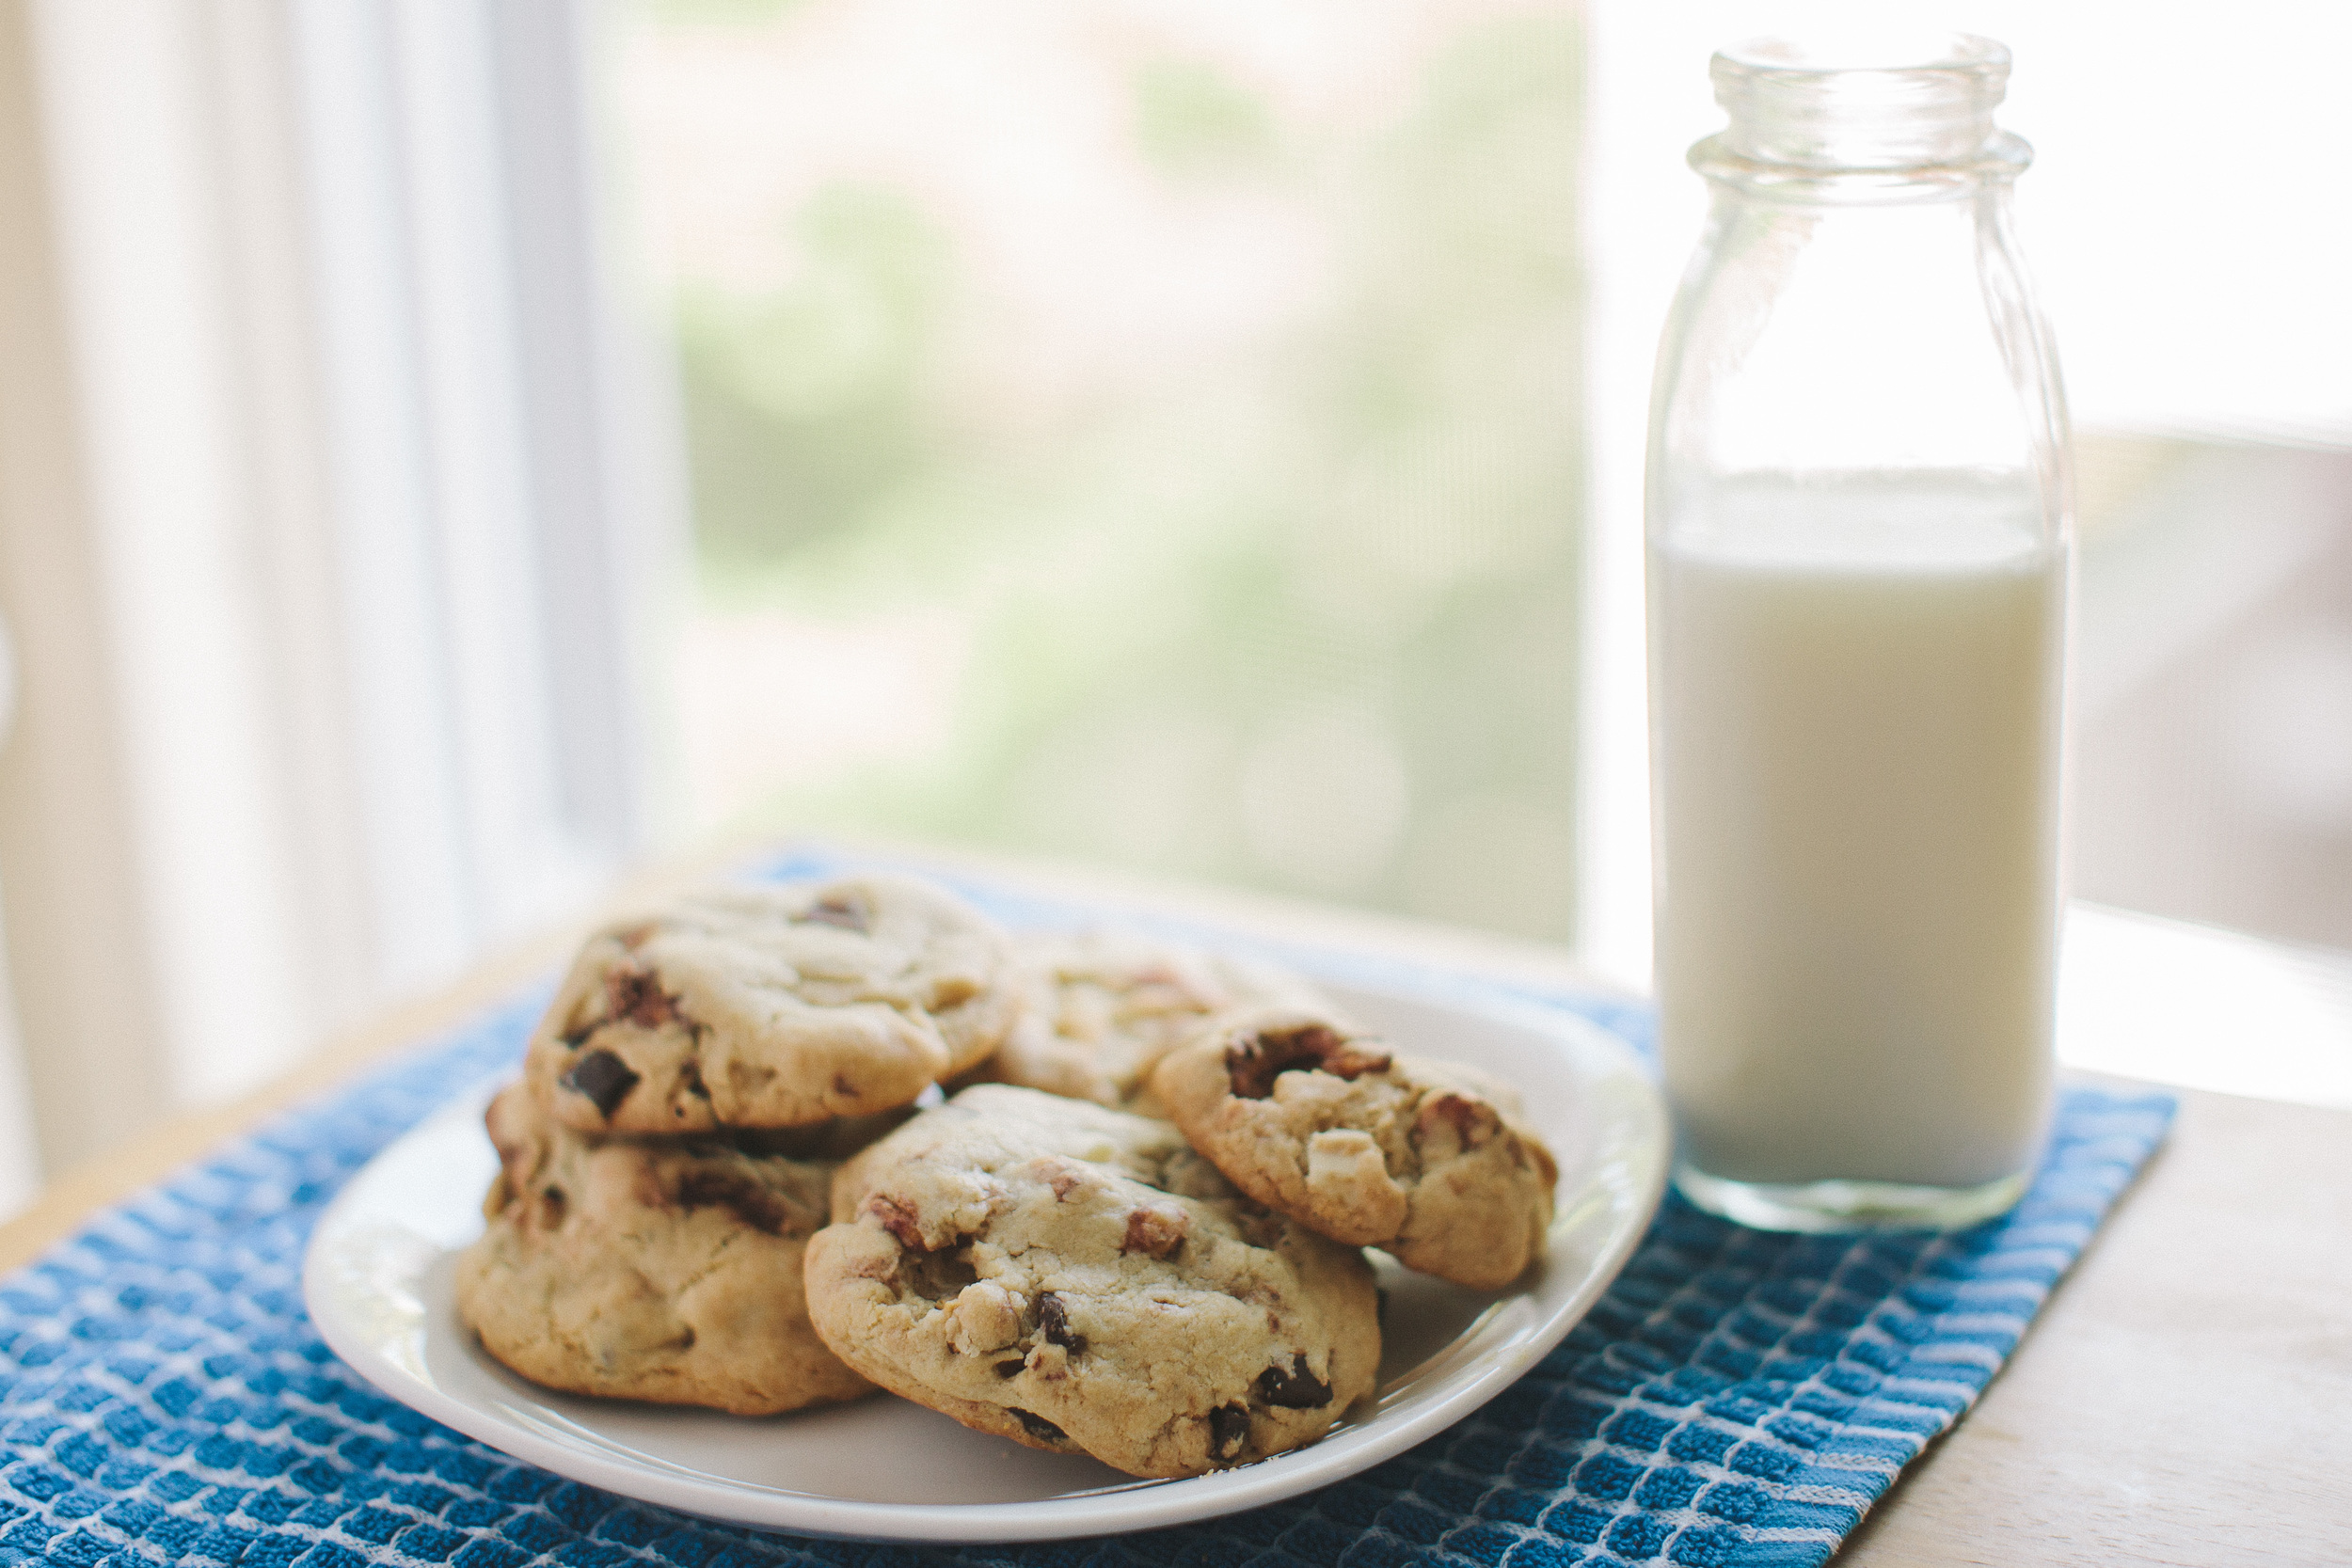 Candied Cashew Chocolate Chunk Cookies | Becca Bakes (www.becca-bakes.com)